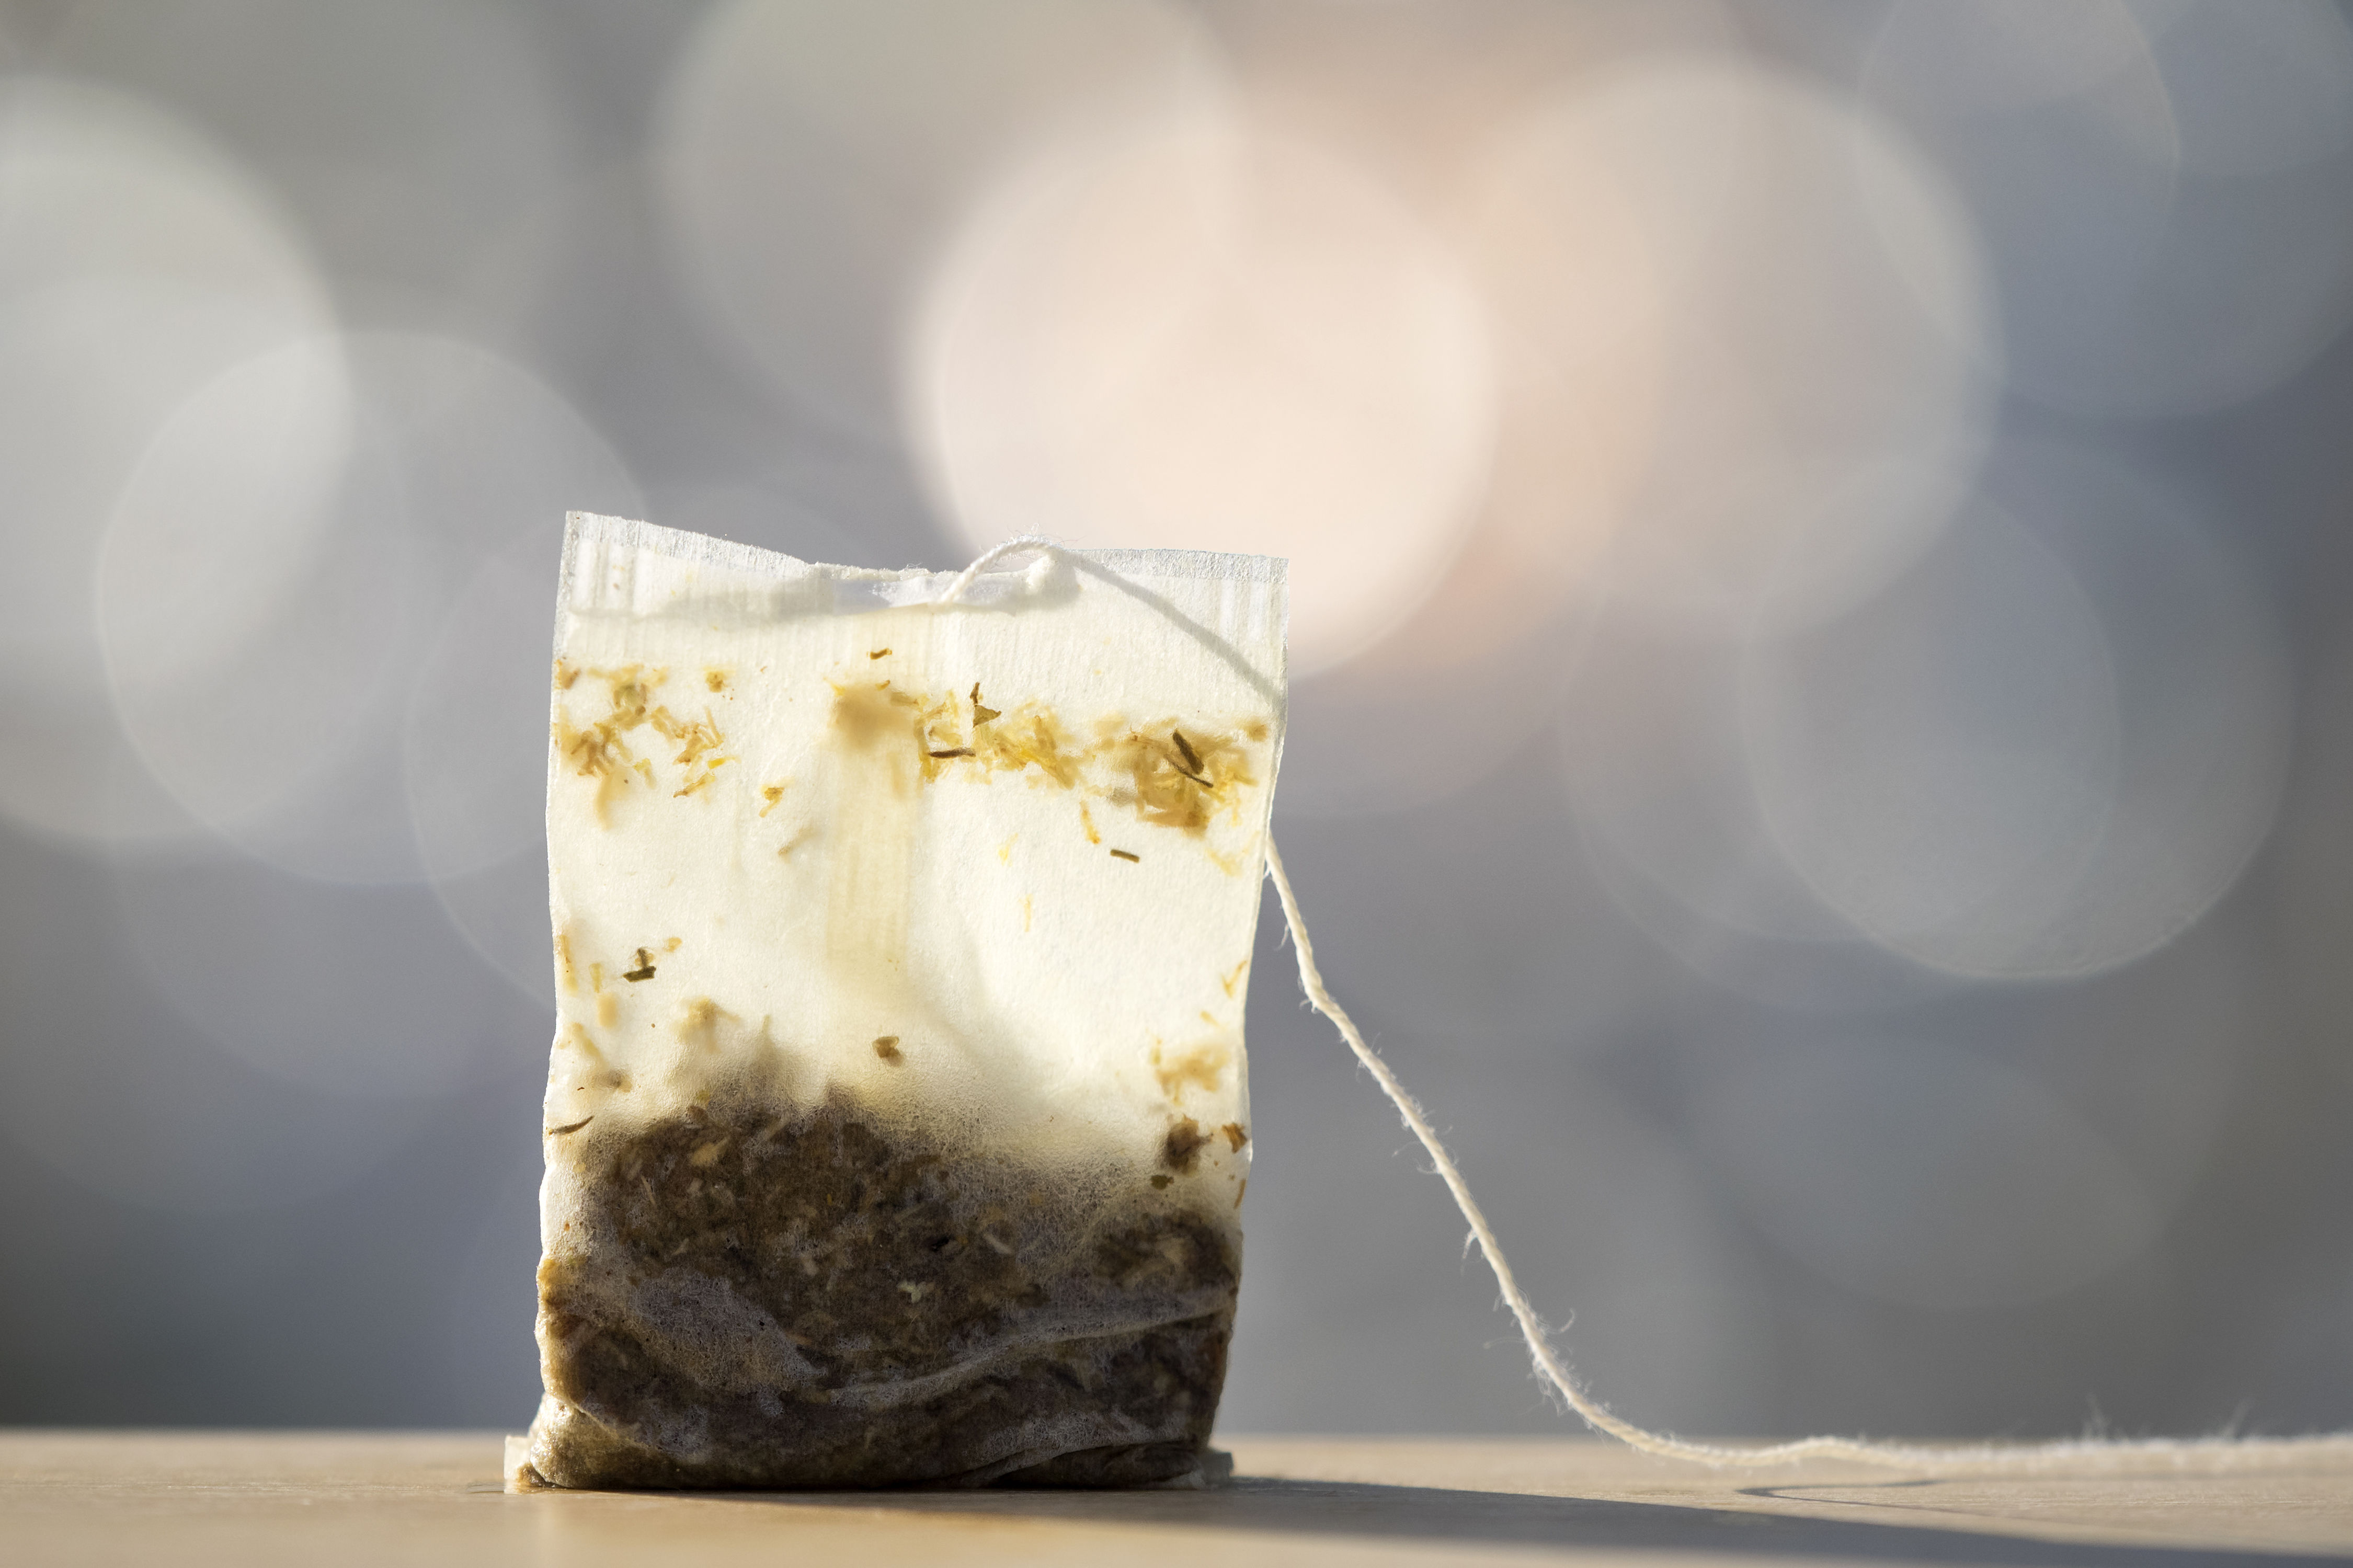 Why You Should Stop Throwing Away Used Tea Bags